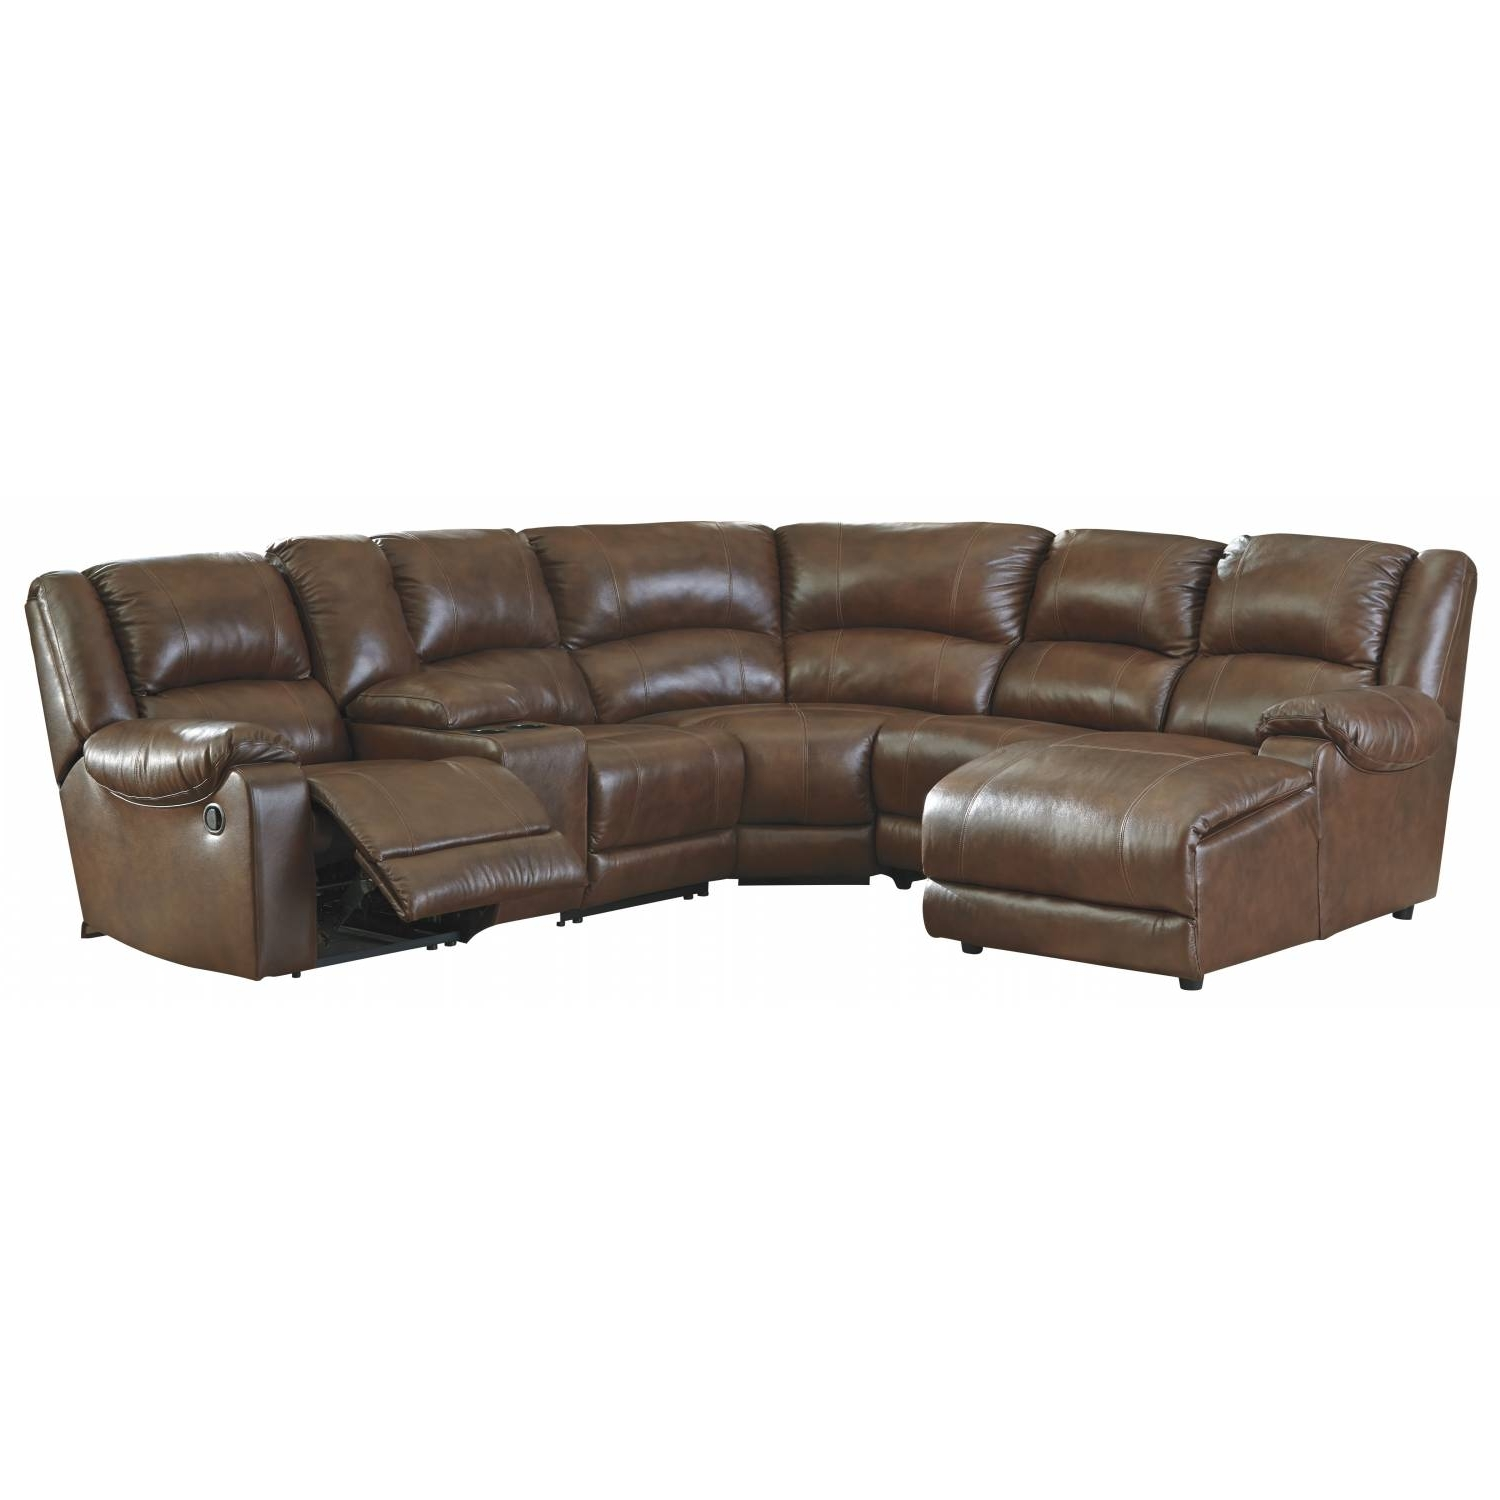 [%Sectional Sofas Discount – Sale Off 20% Furniture In San Francisco With Regard To Best And Newest San Francisco Sectional Sofas|San Francisco Sectional Sofas For Famous Sectional Sofas Discount – Sale Off 20% Furniture In San Francisco|Famous San Francisco Sectional Sofas Inside Sectional Sofas Discount – Sale Off 20% Furniture In San Francisco|Newest Sectional Sofas Discount – Sale Off 20% Furniture In San Francisco With Regard To San Francisco Sectional Sofas%] (View 6 of 15)